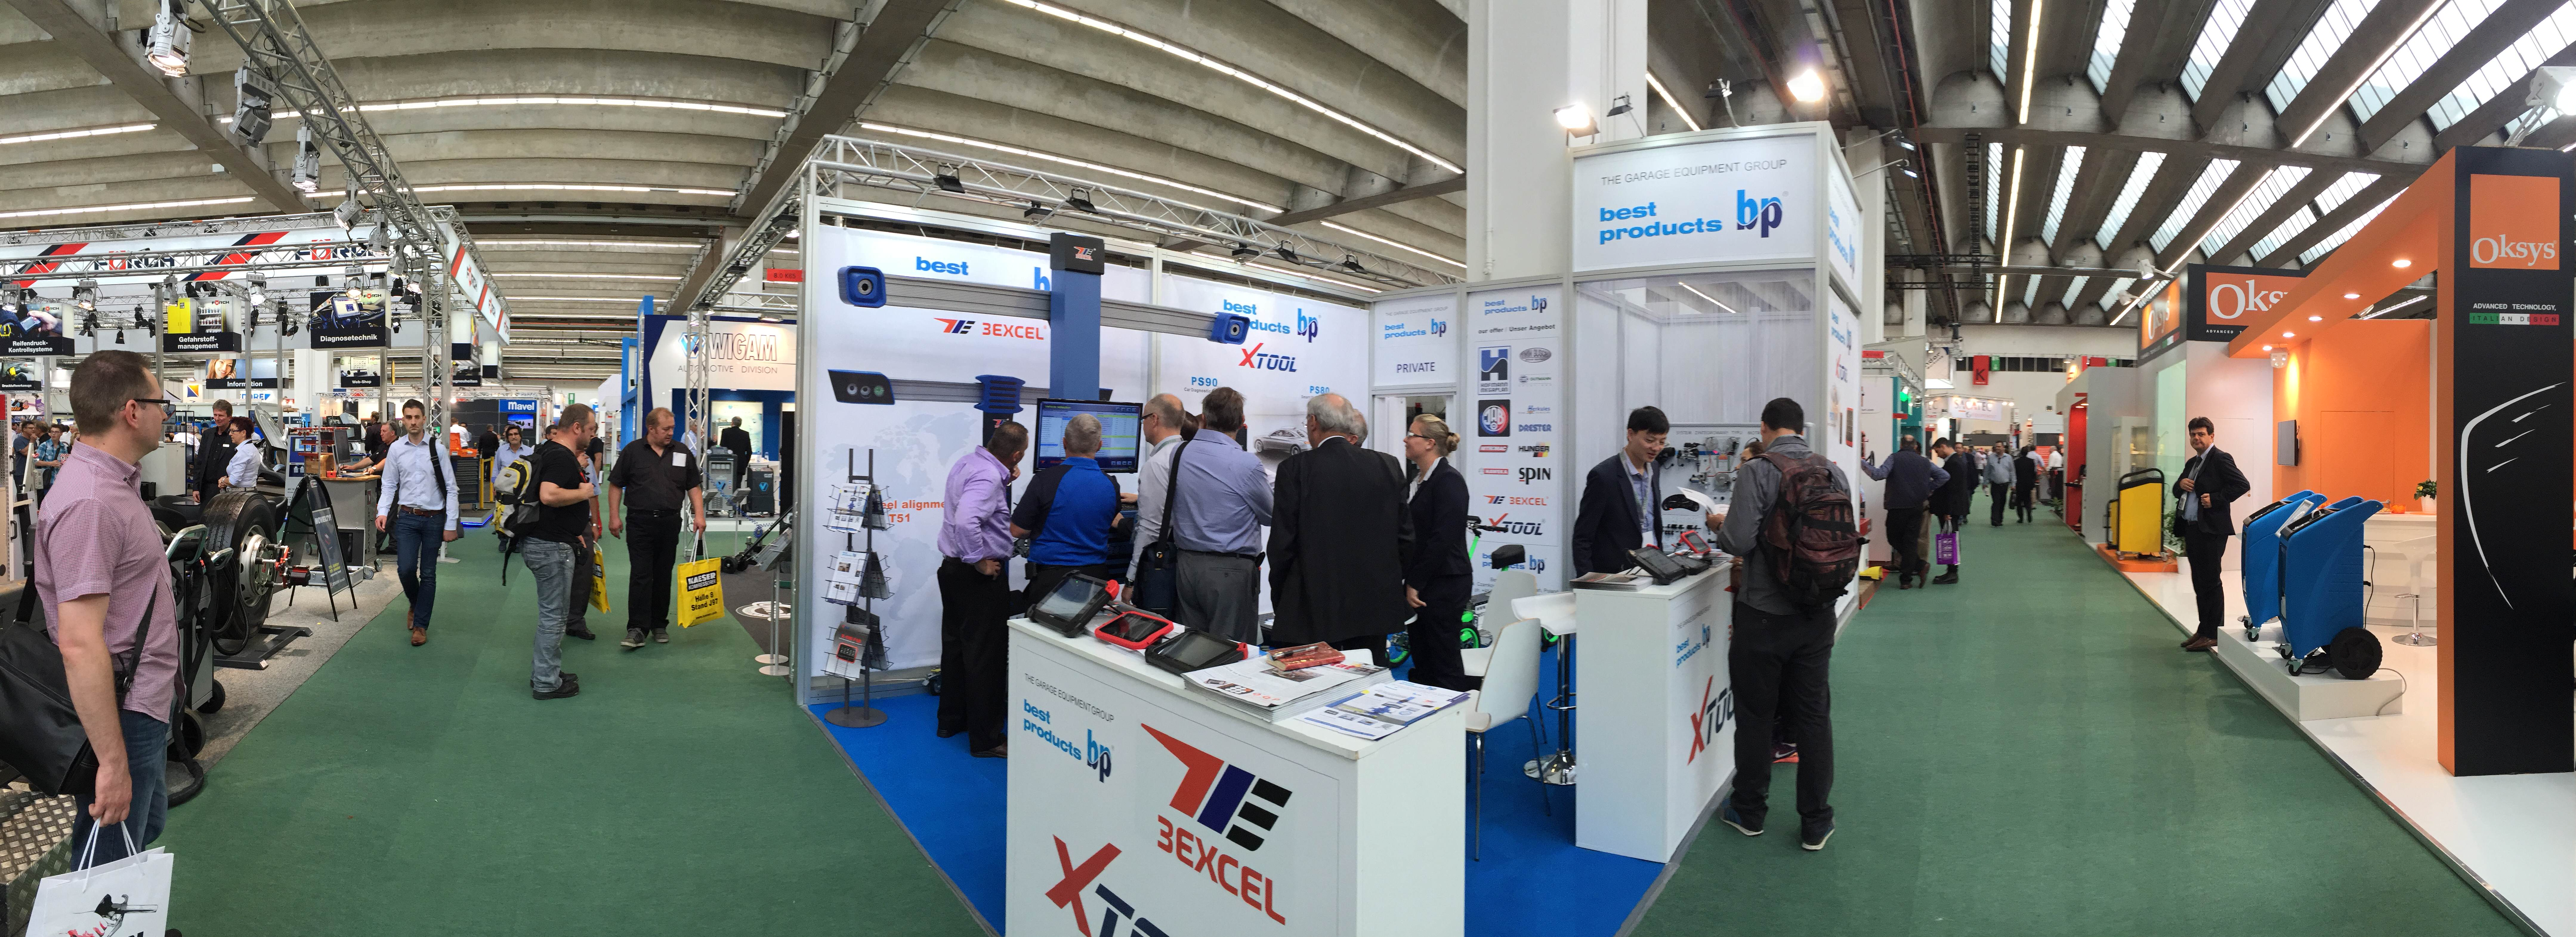 Stoisko Best Products na Automechanice 2016